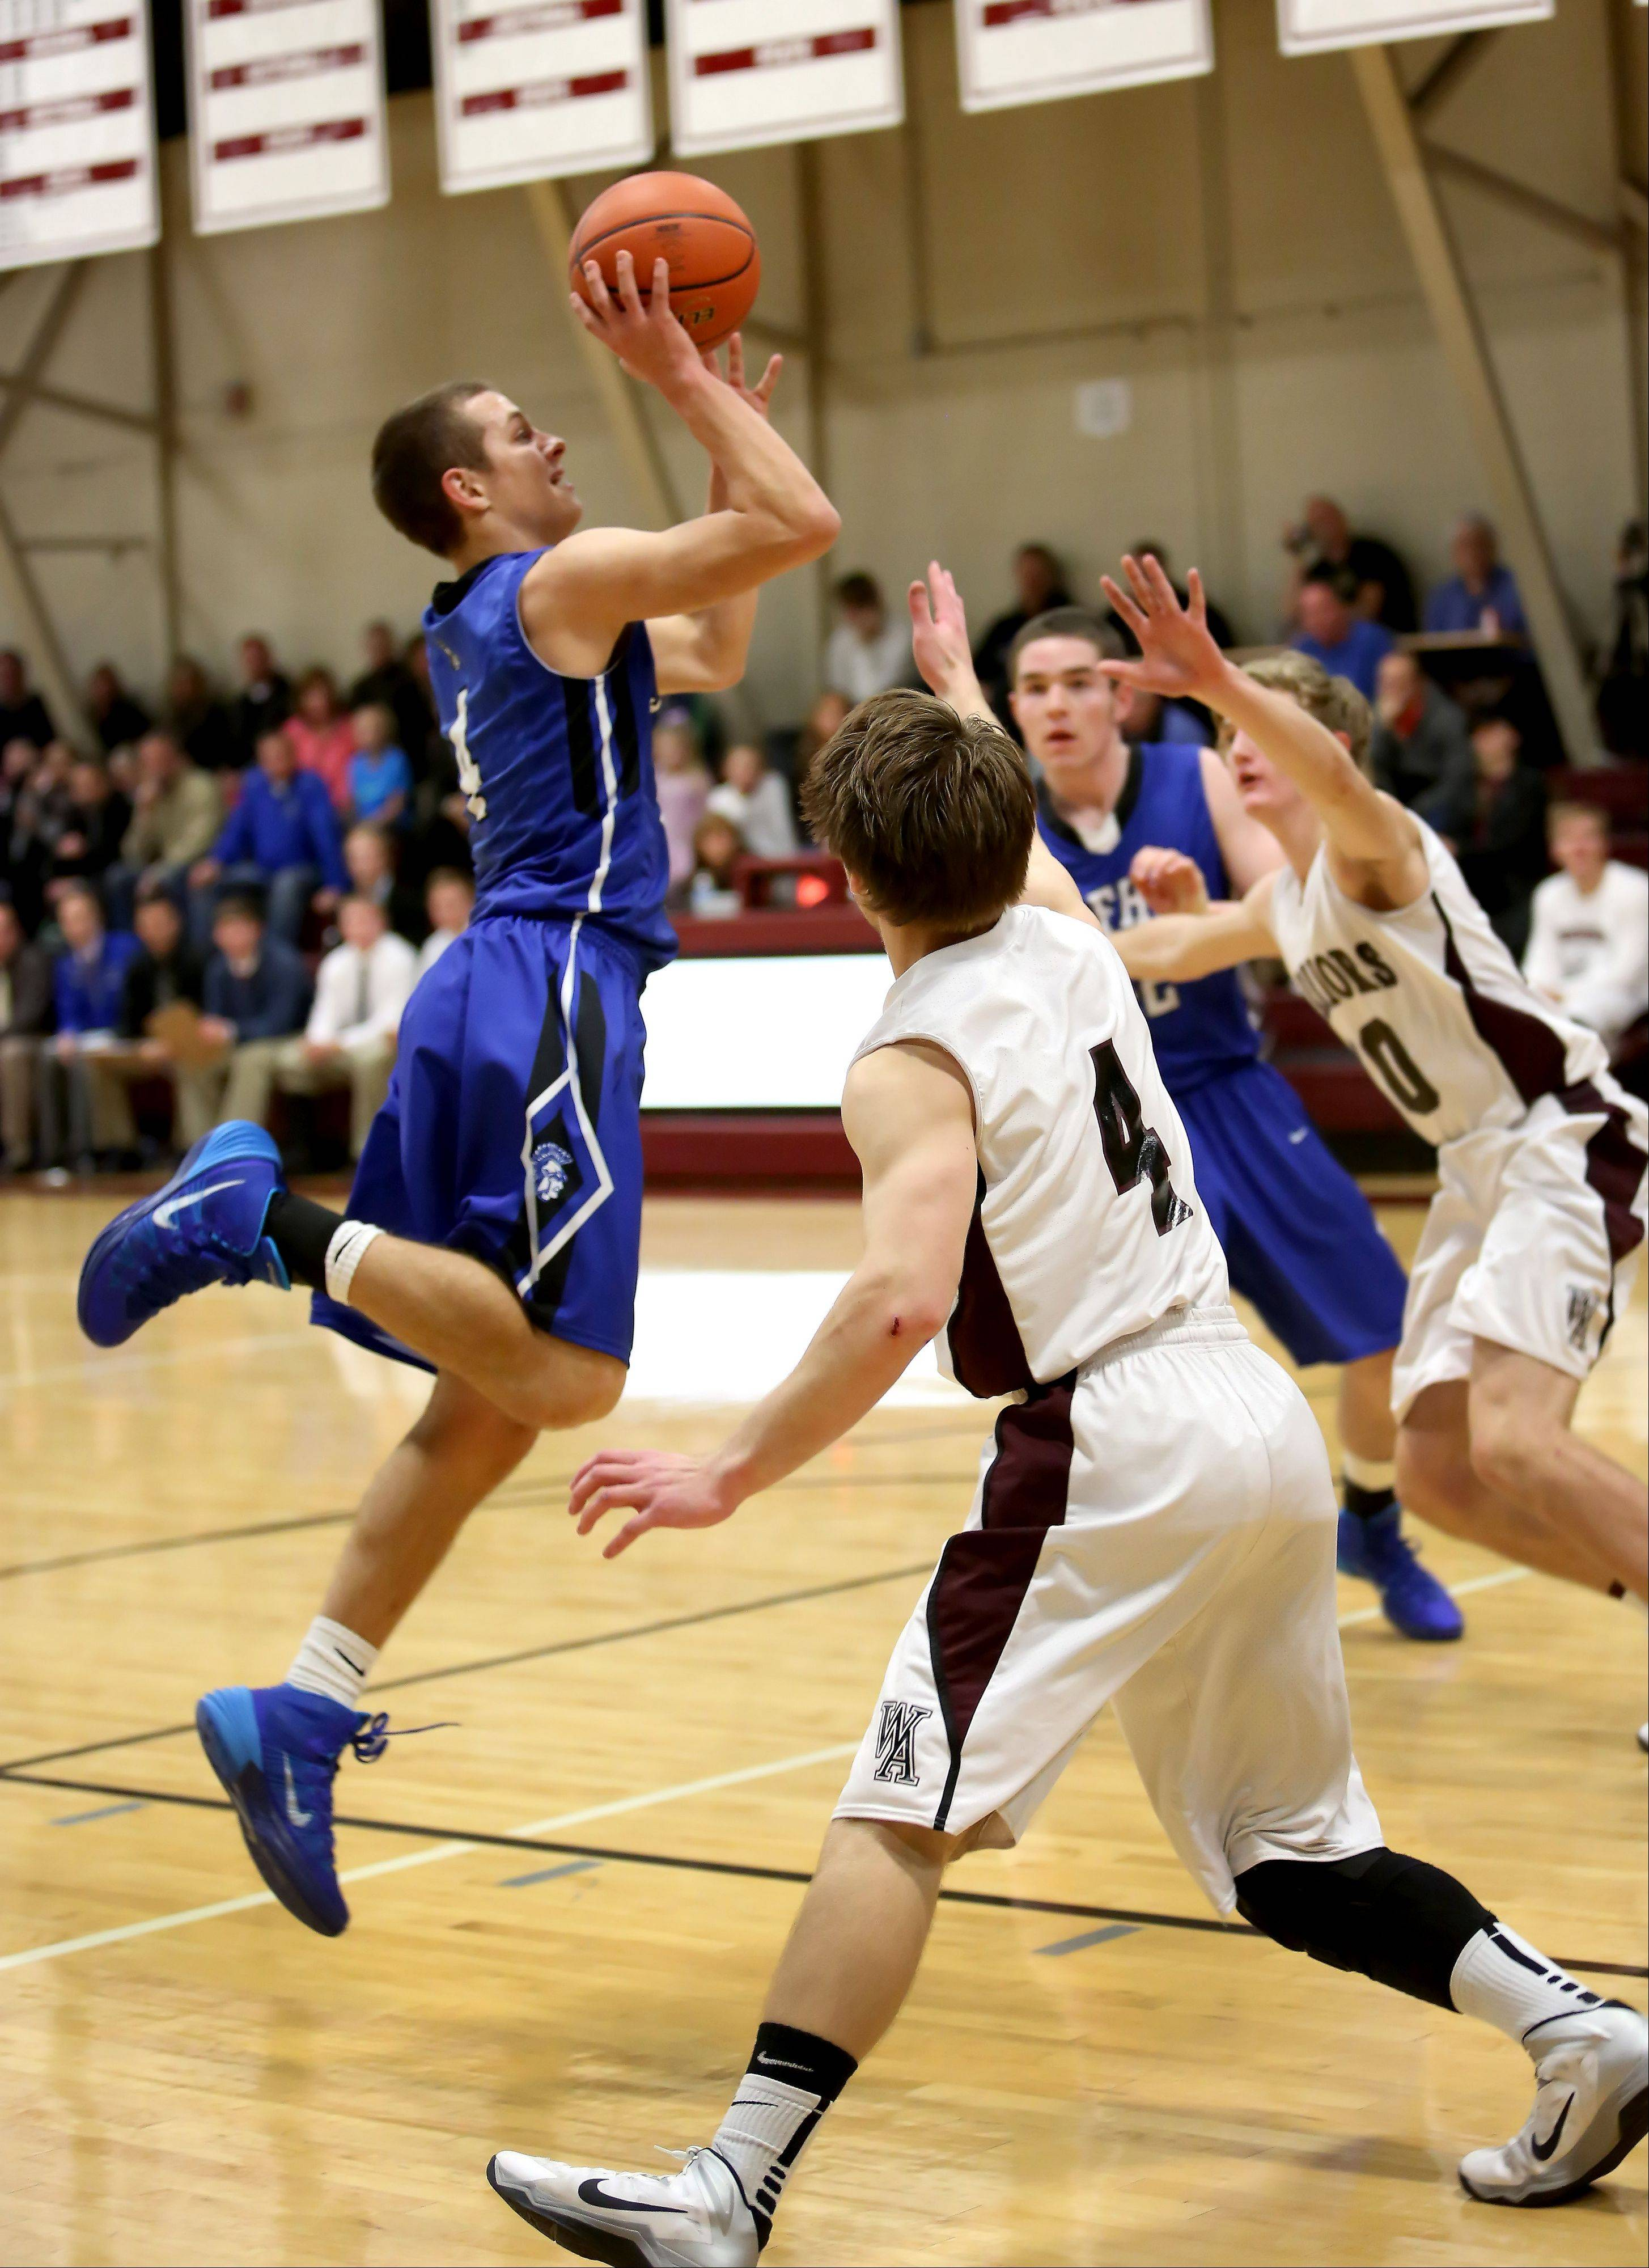 Zach Prociuk of St. Francis, left, goes up for a shot in action against Wheaton Academy during boys basketball in West Chicago on Tuesday.